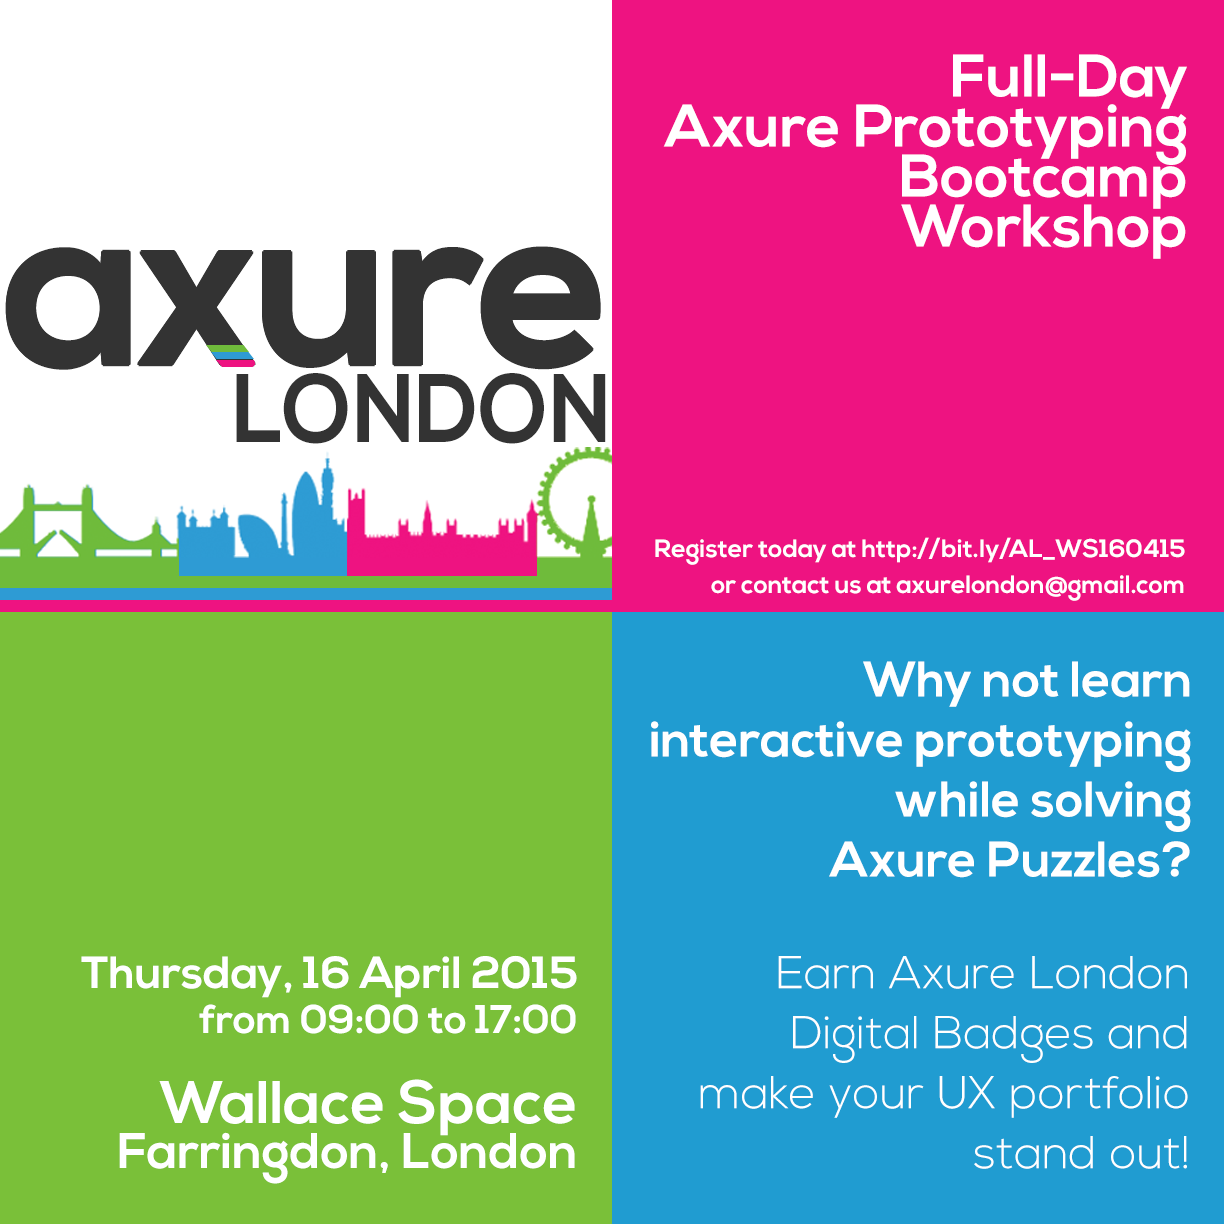 Axure London Workshop